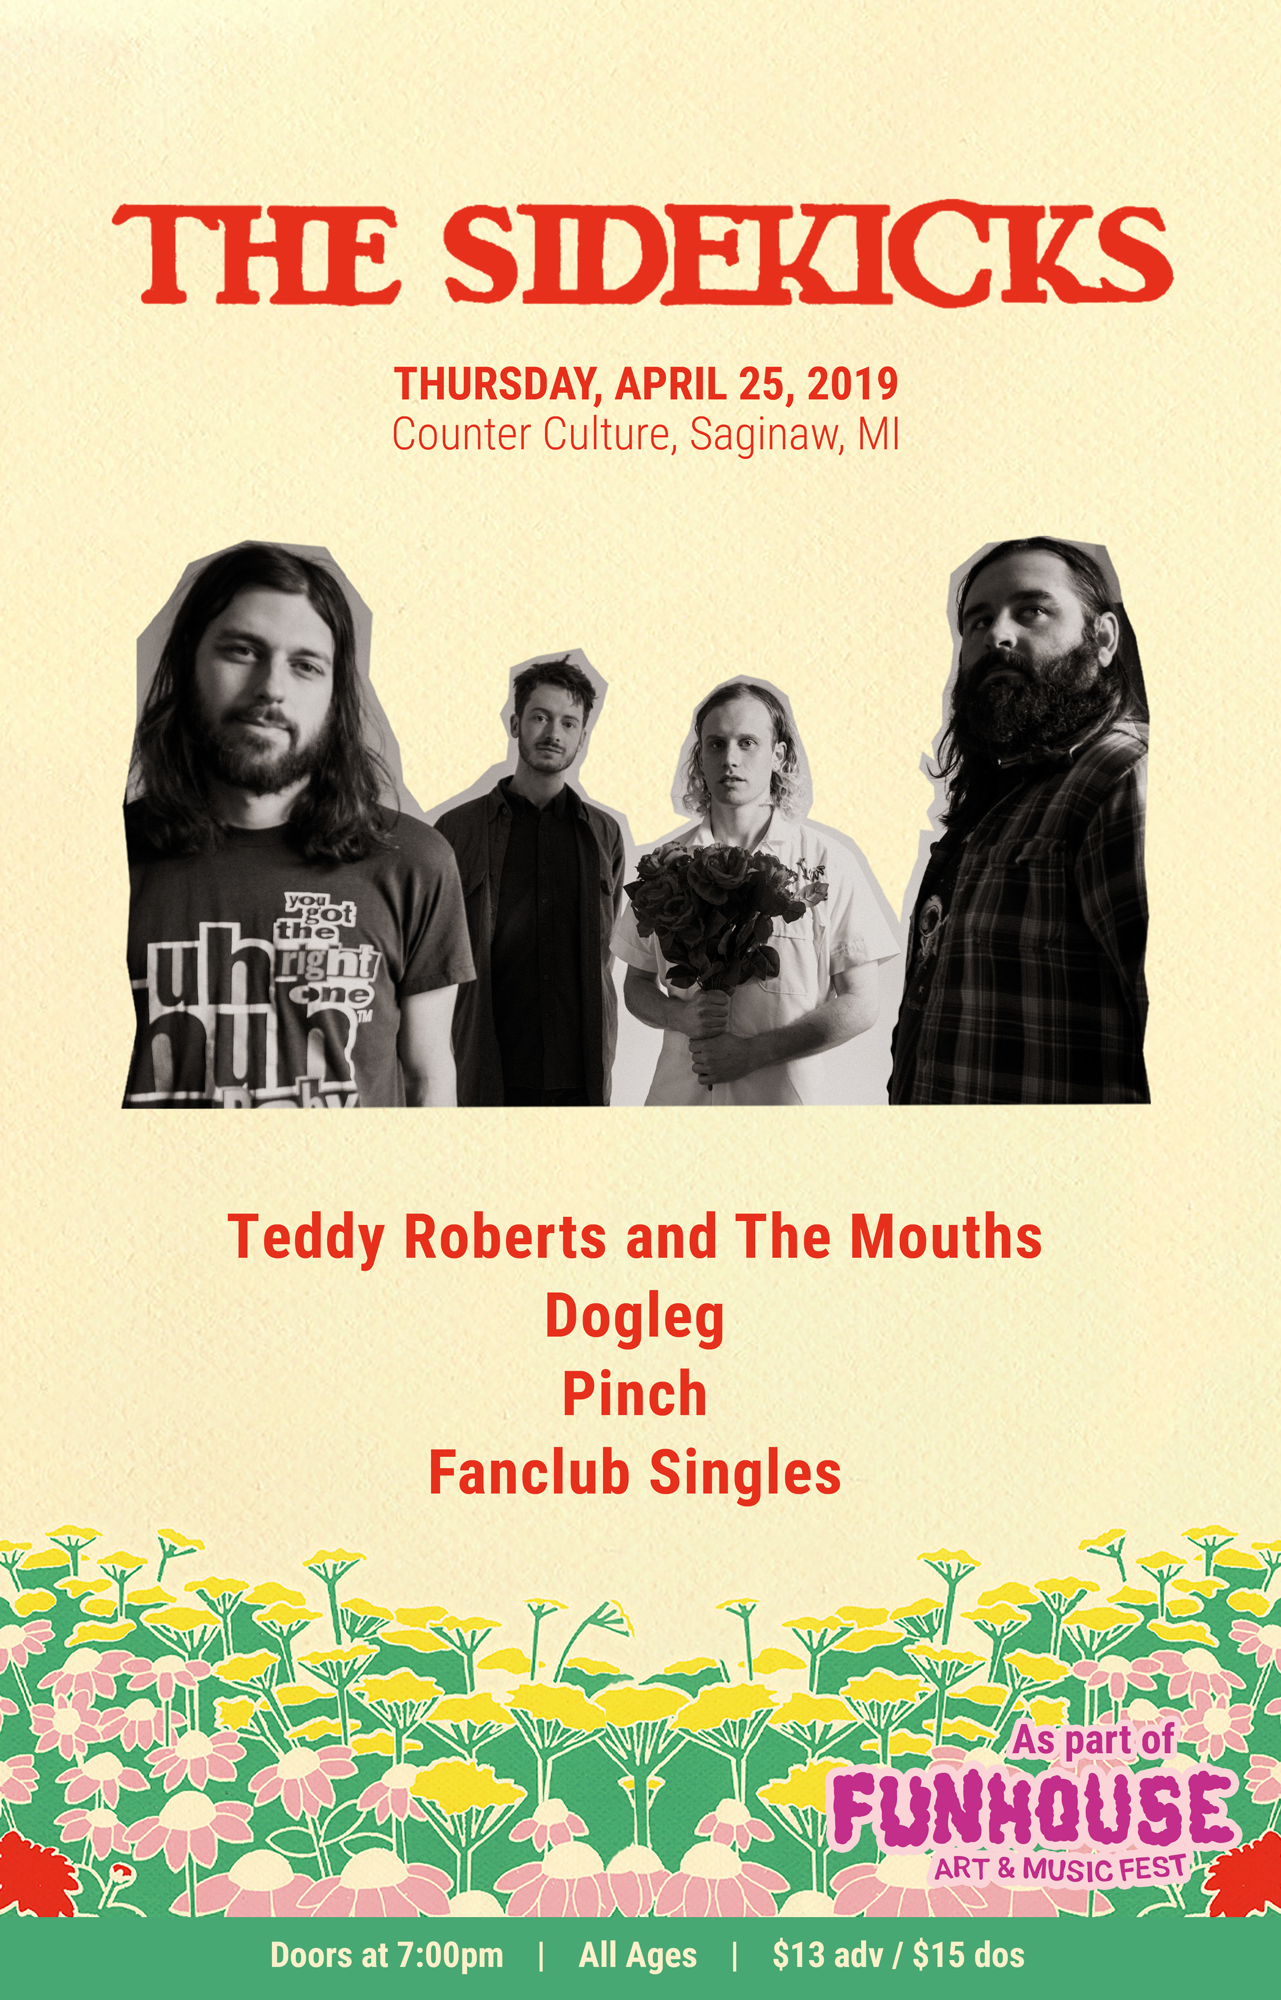 THE SIDEKICKS - w/ Teddy Roberts and the Mouths, Dogleg, Pinch, Fanclub SinglesThursday, April 25, 2019 at Counter Culture - Saginaw, MIDoors at 7pm - All Ages - $13 adv / $15 dos